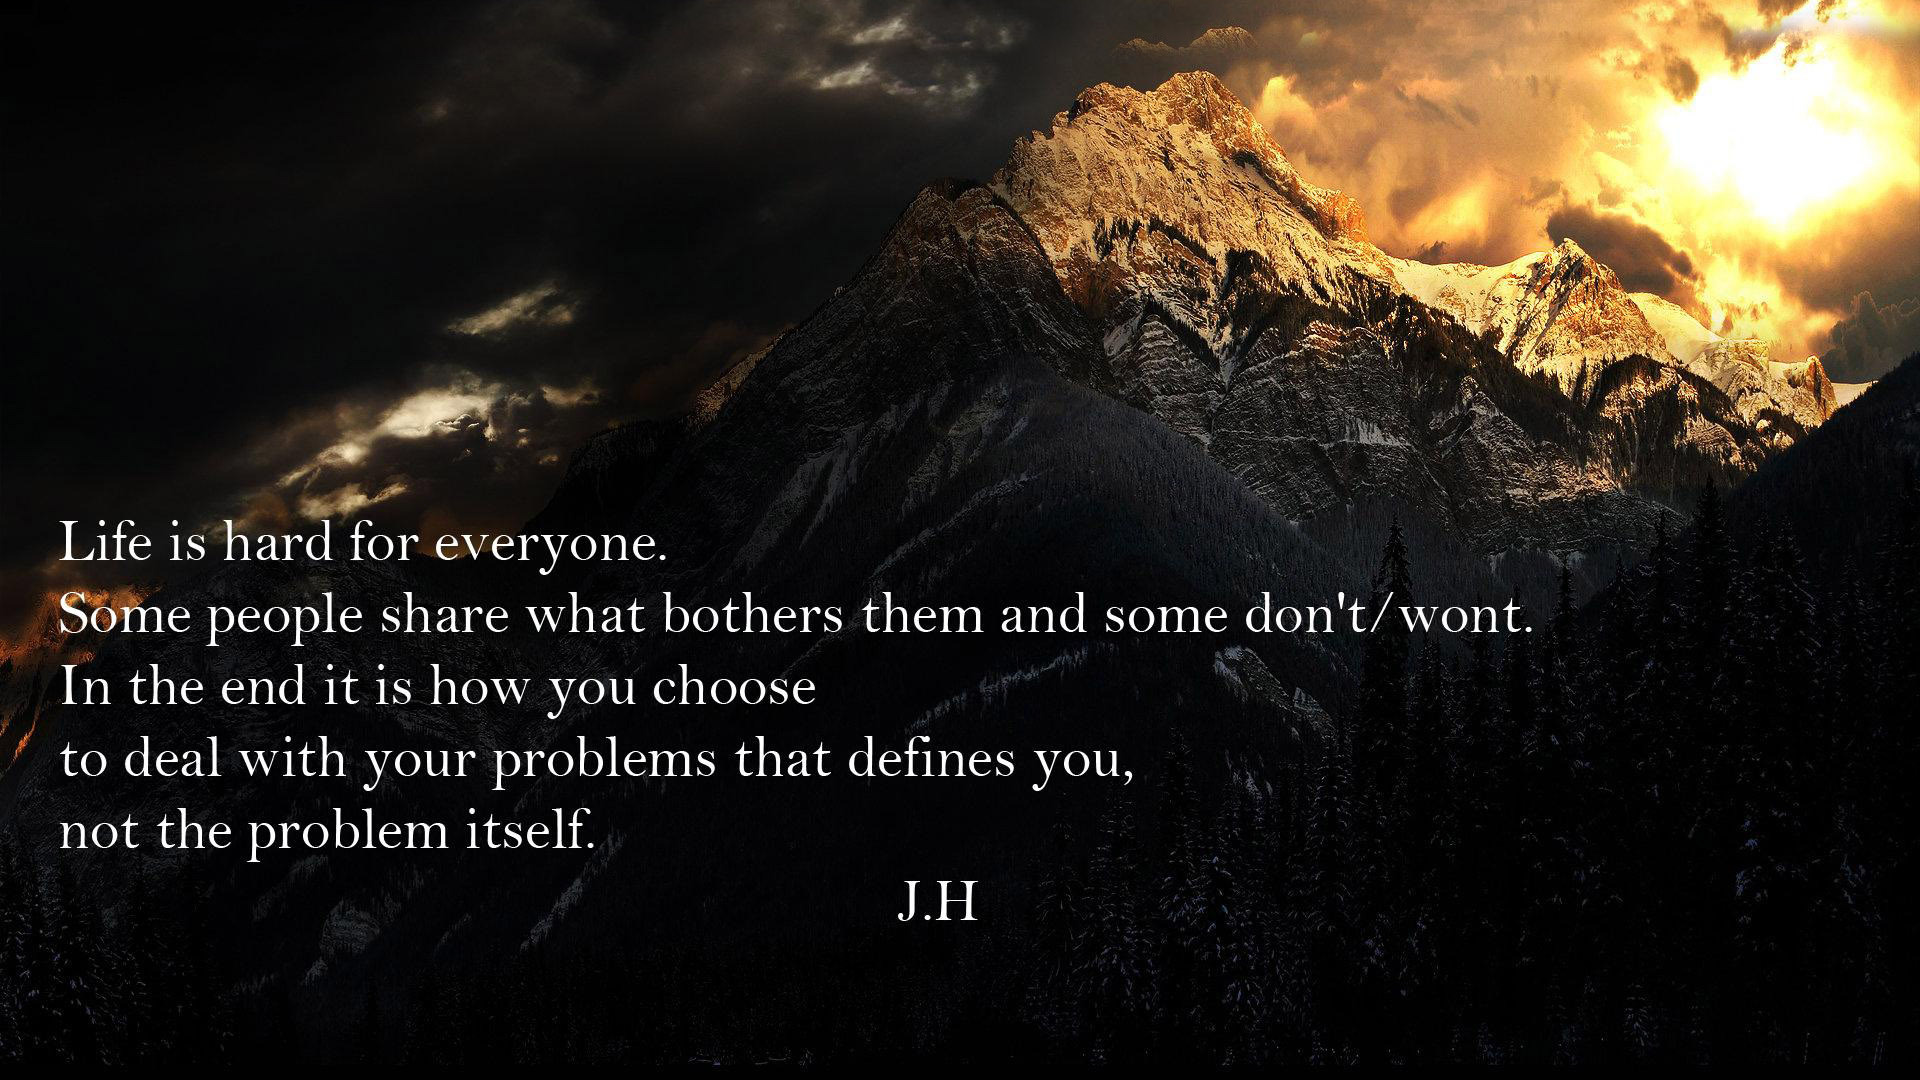 J.H. quote